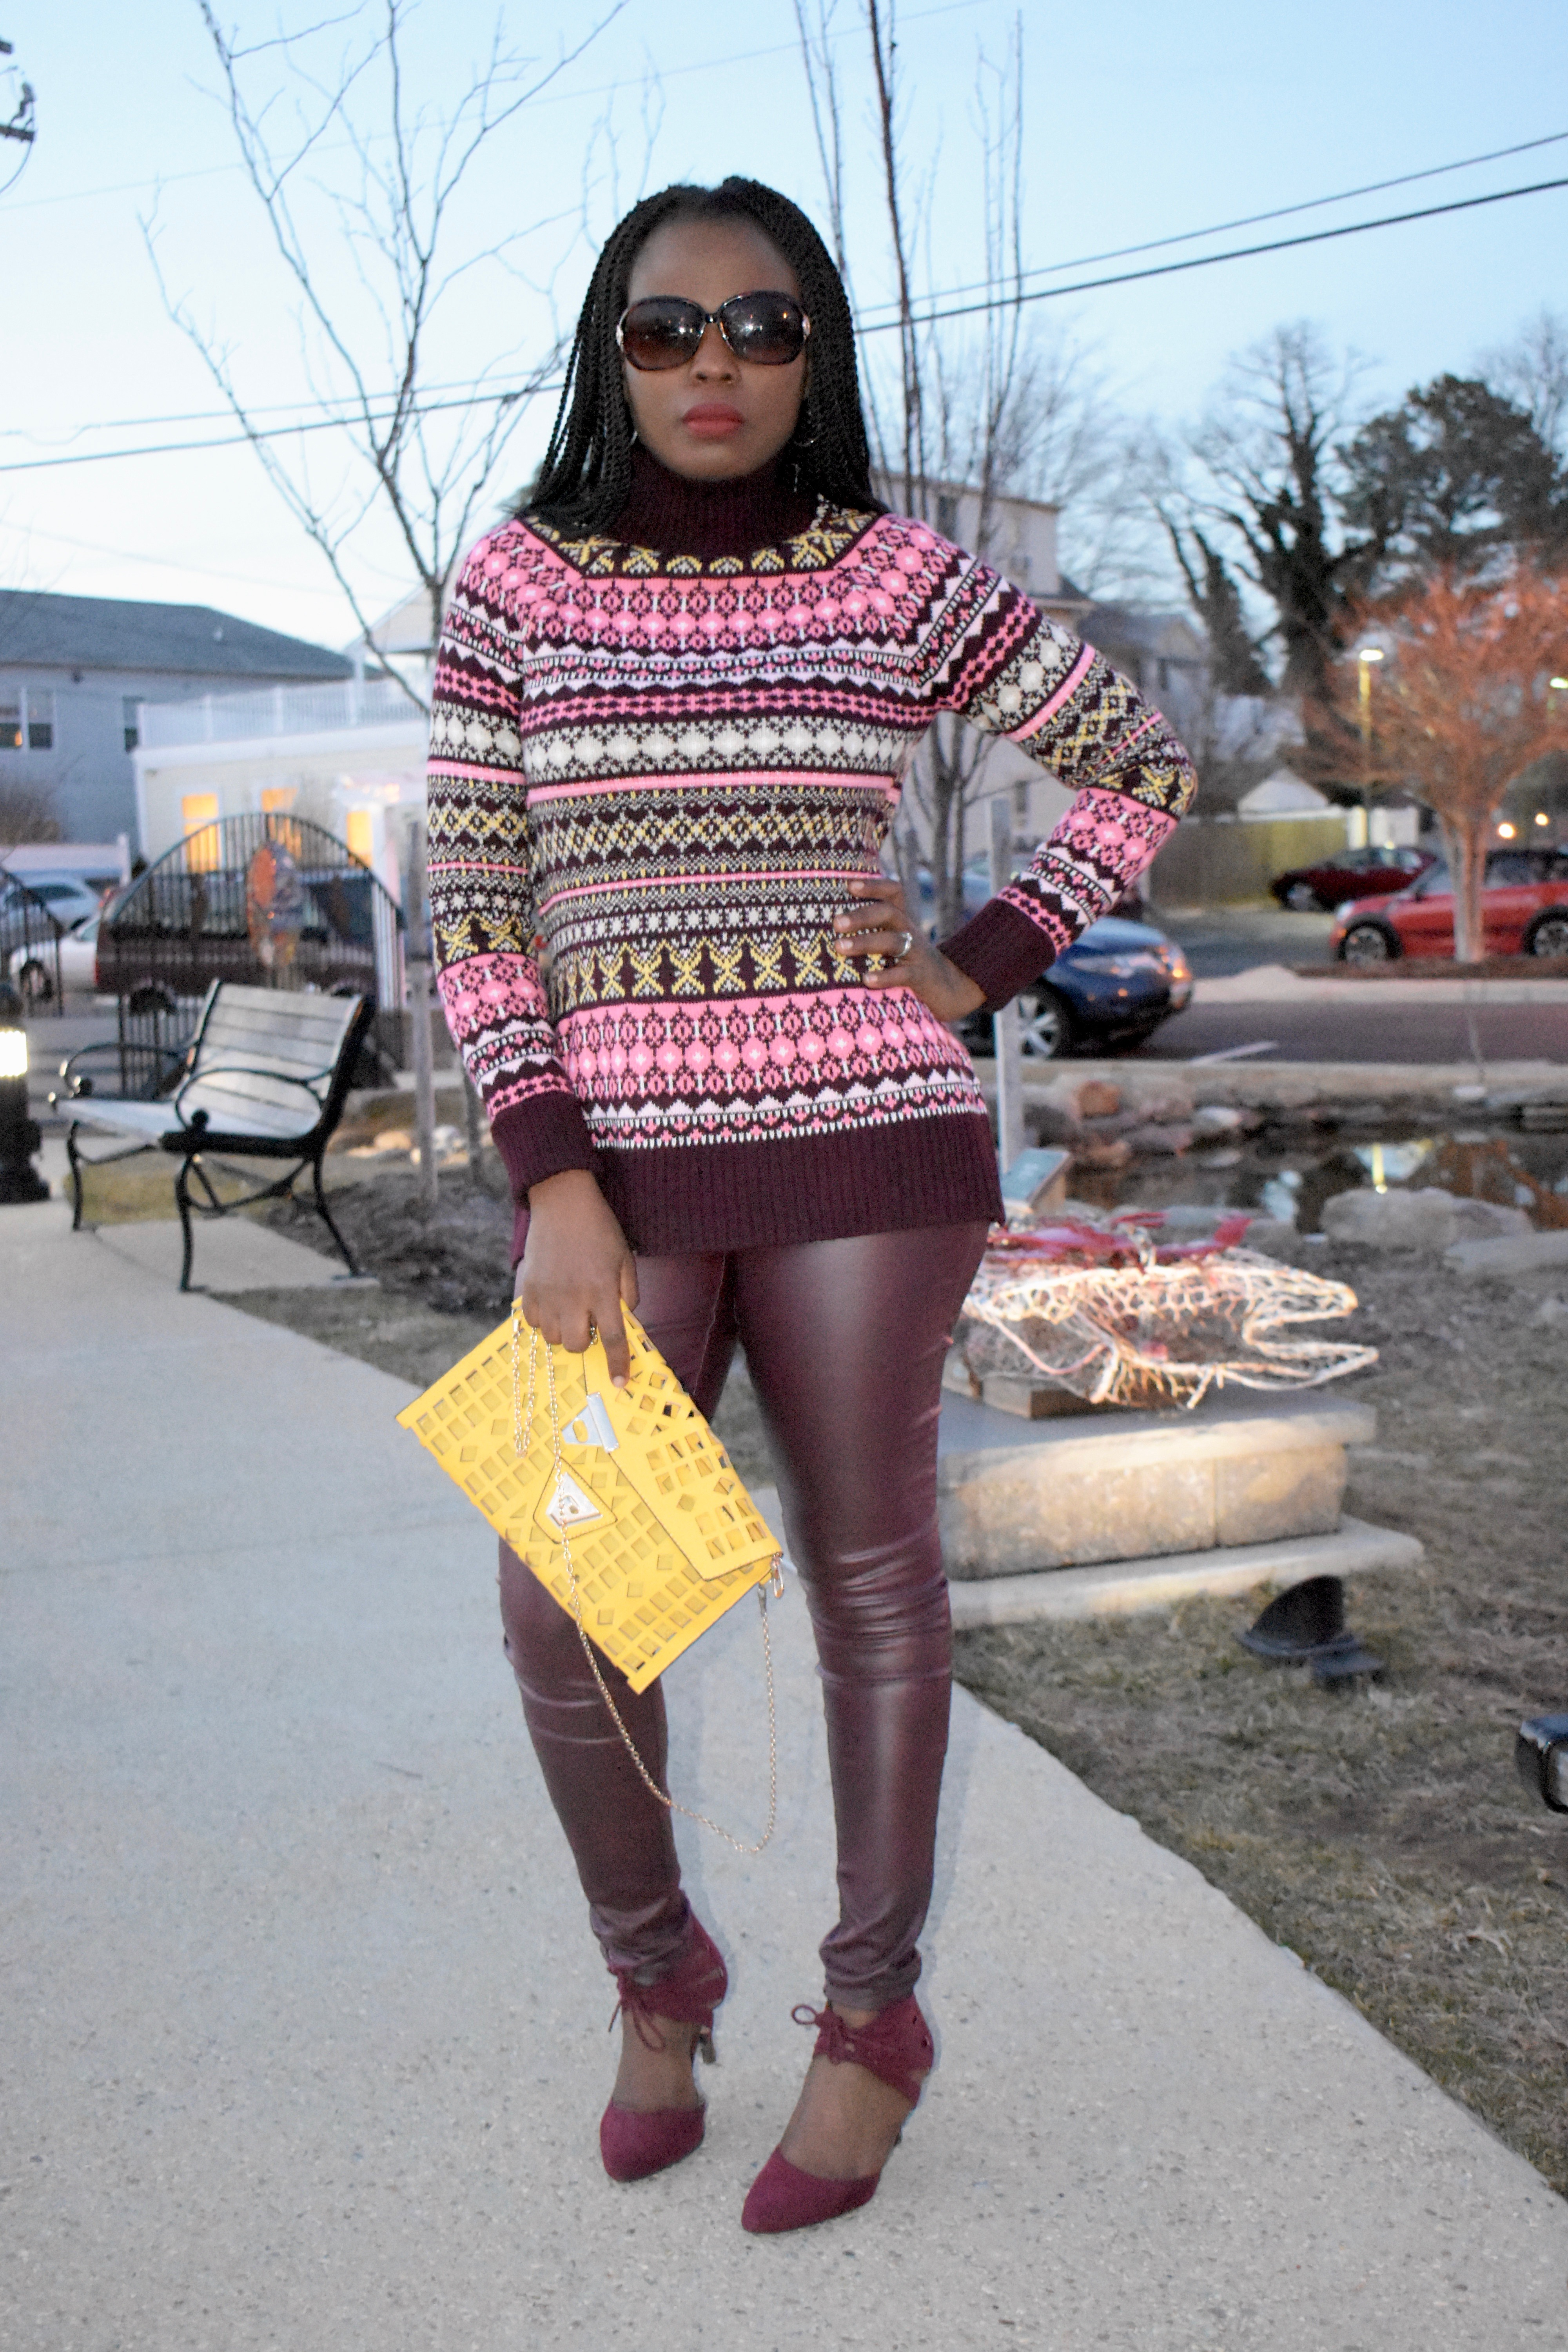 Chunky sweater for winter+ read the review and make your own conclusion. graphic